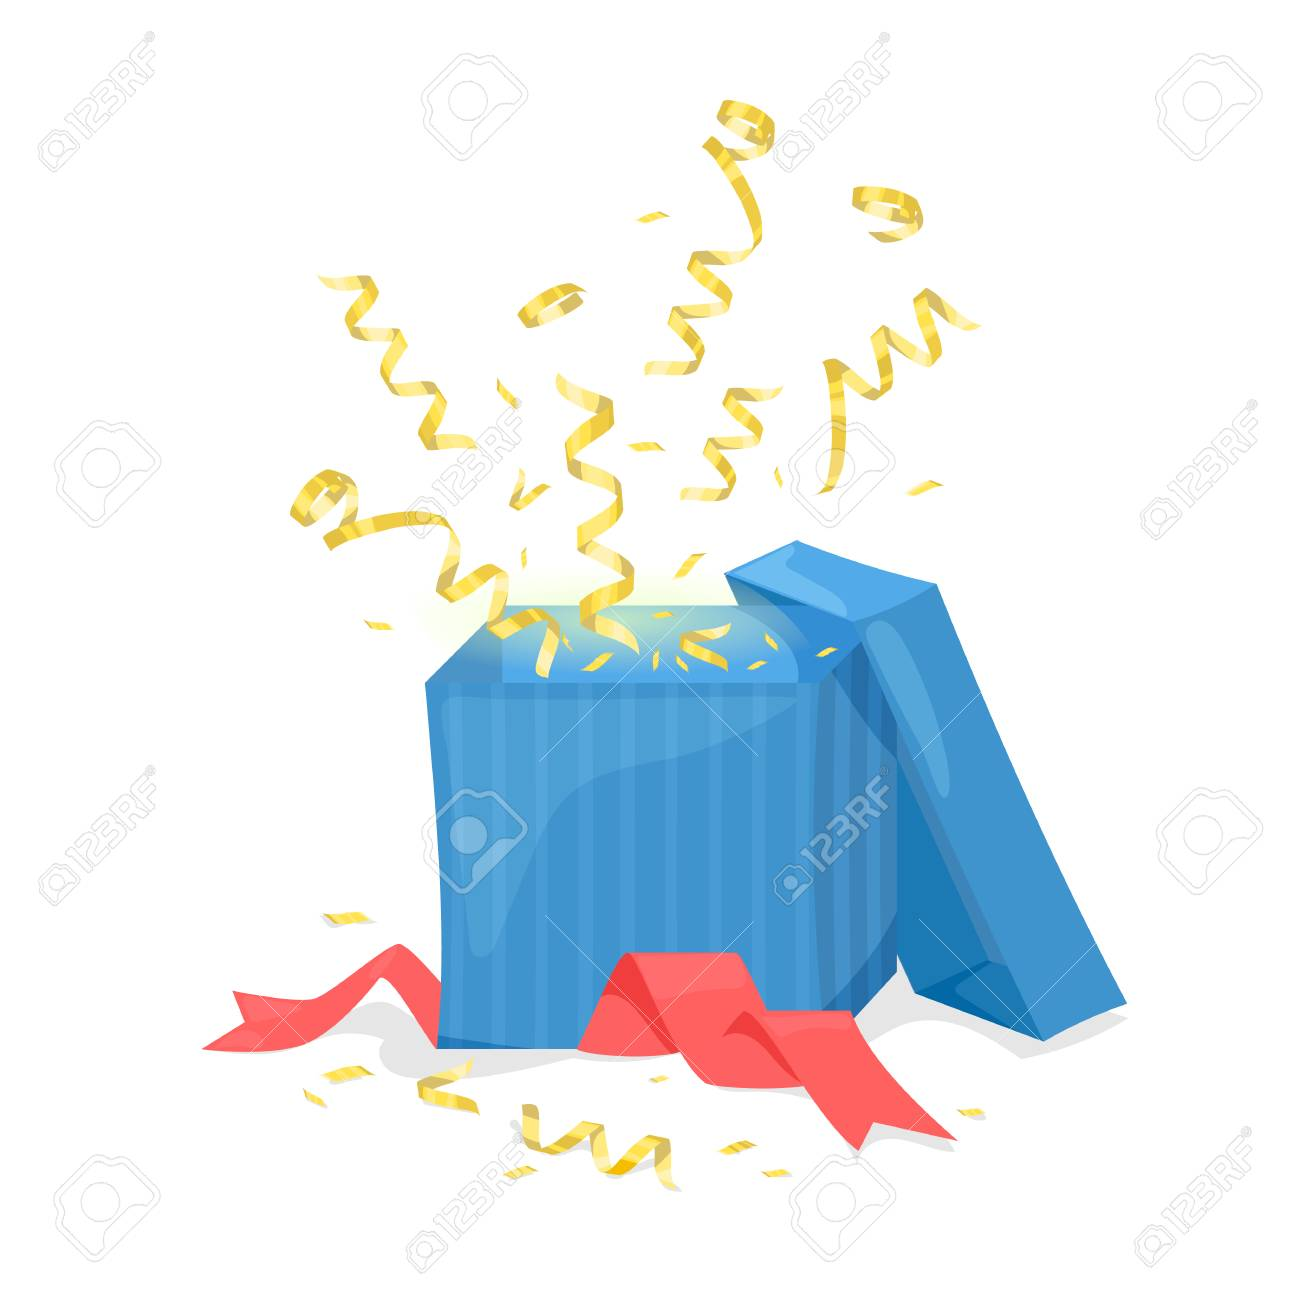 Open gift box explode gold ribbon and confetti. Vector illustration Stock Vector - 87269151  sc 1 st  123RF.com & Open Gift Box Explode Gold Ribbon And Confetti. Vector Illustration ...